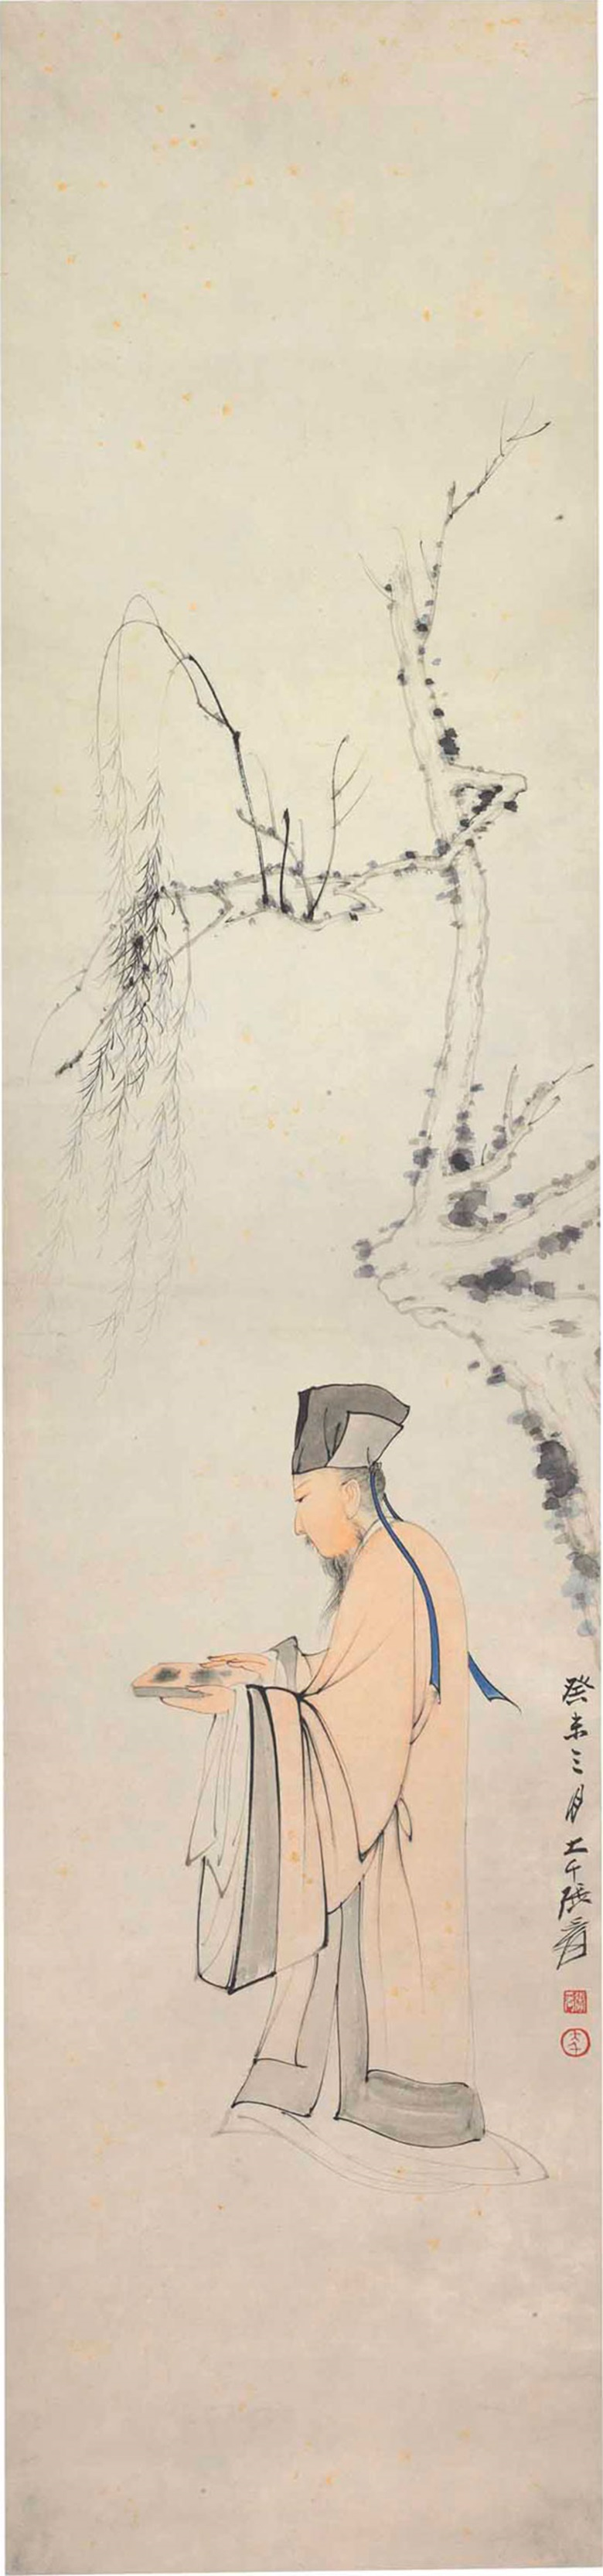 Zhang Daqian (1899-1983), Su Dongpo Holding an Inkstone, dated third month, guiwei year (1943). 43½ x 10⅛  in (110.5 x 25.7  cm). Estimate $80,000-120,000. This lot is offered in Fine Chinese Paintings on 12 September 2017  at Christie's in New York